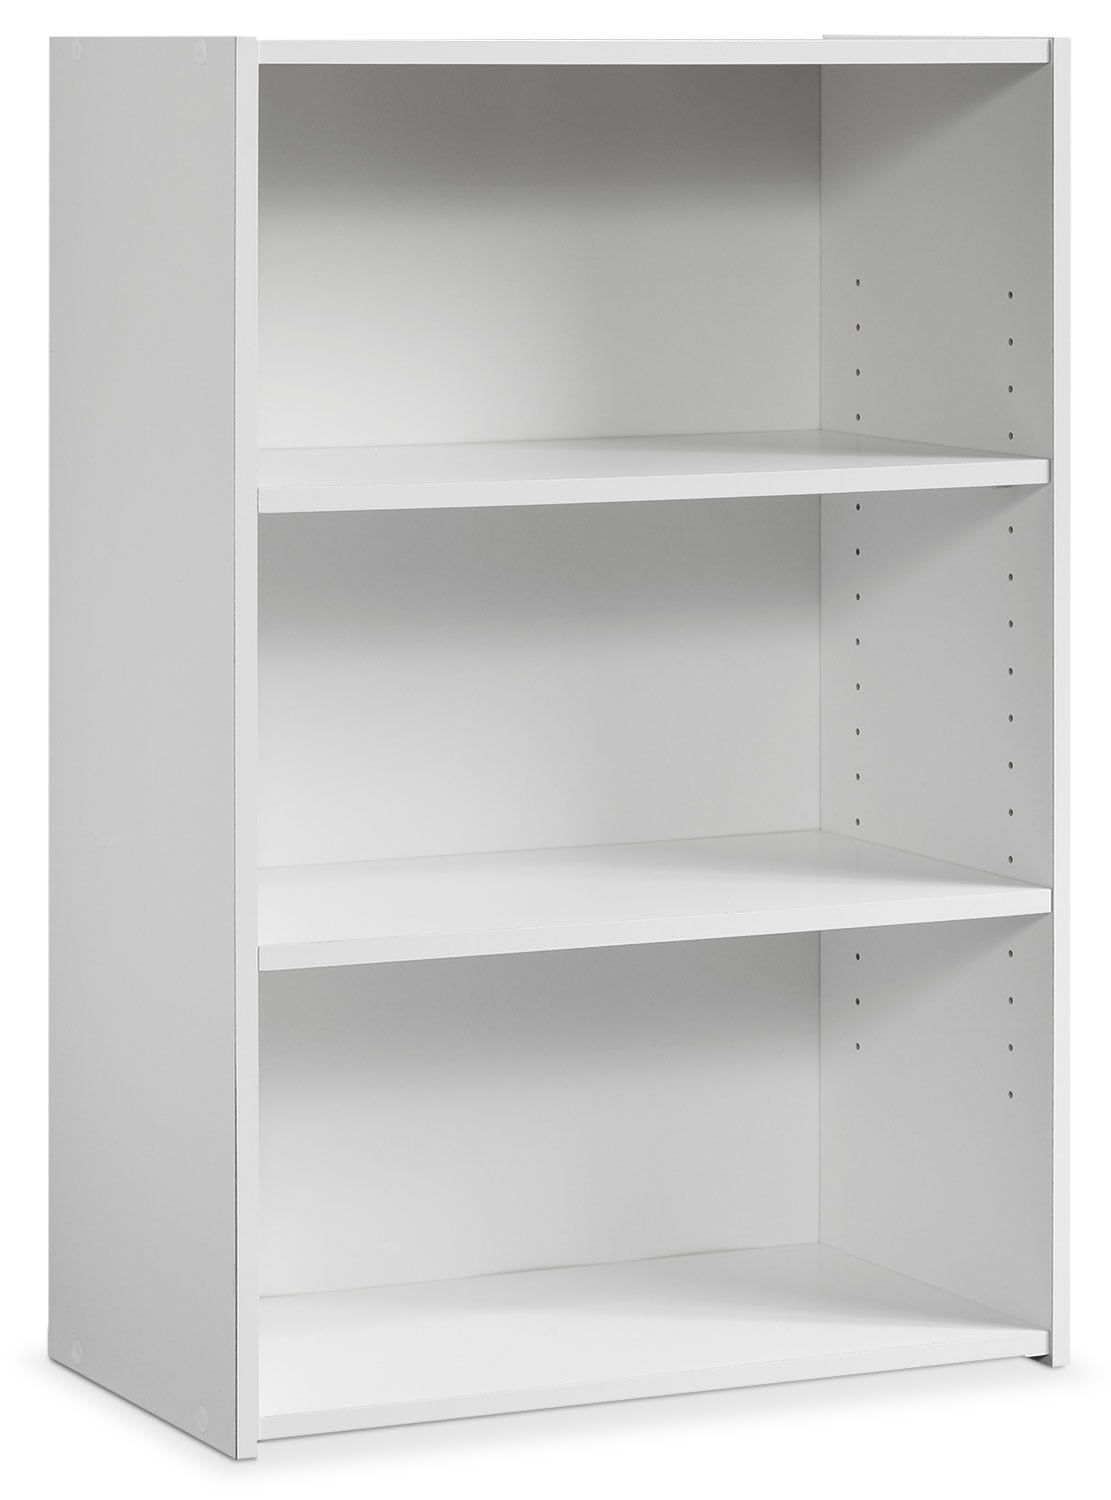 #4D4E4B Home Office Furniture Beginnings 2 Shelf Bookcase – White with 1111x1500 px of Recommended 2 Shelf Bookcase White 15001111 save image @ avoidforclosure.info